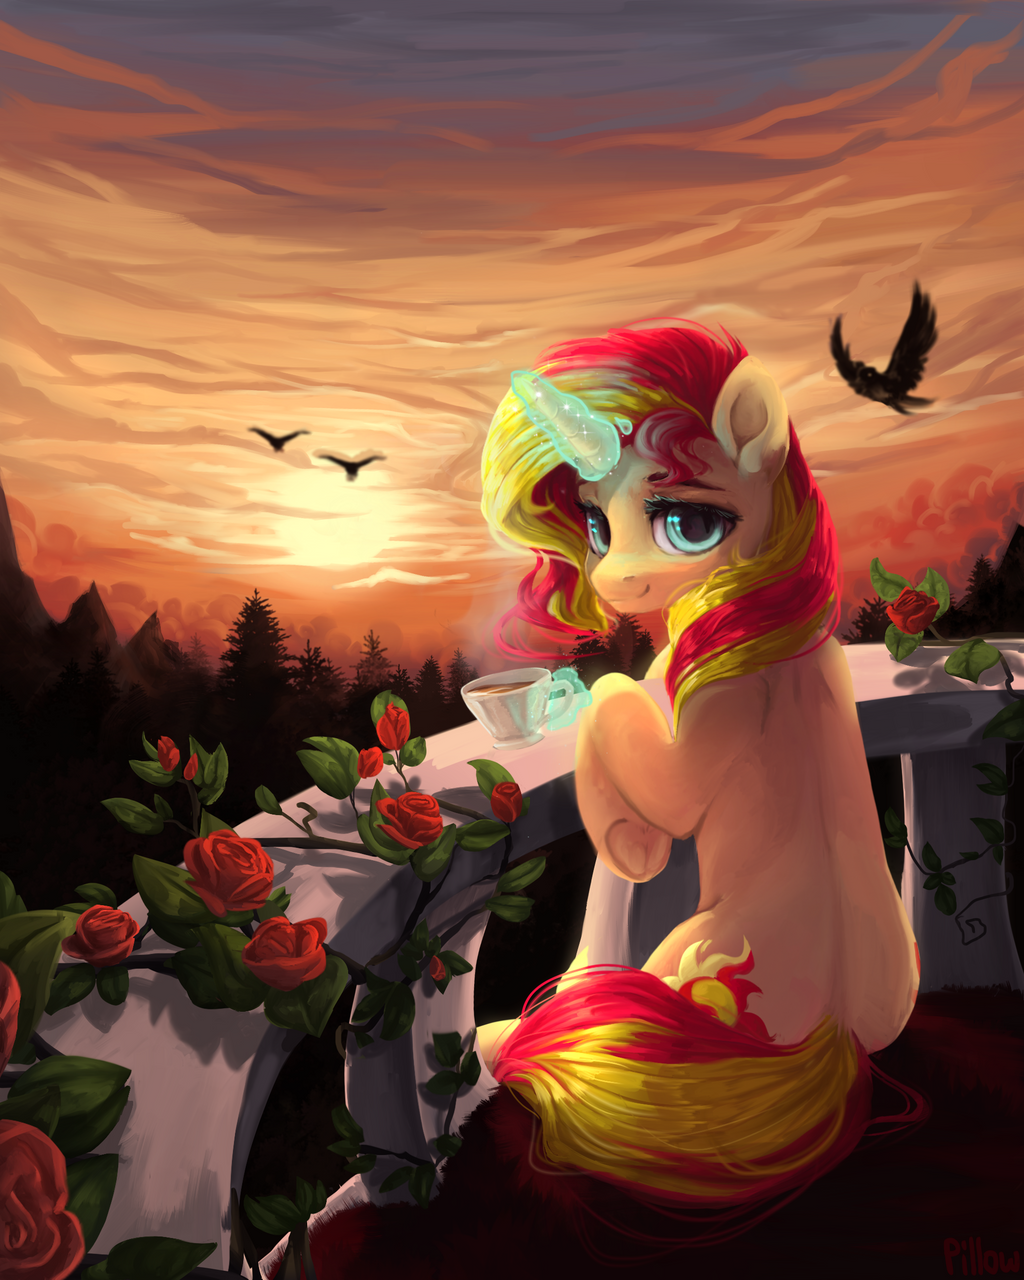 sunset_shimmer_by_graypillow-dbm81kl.png